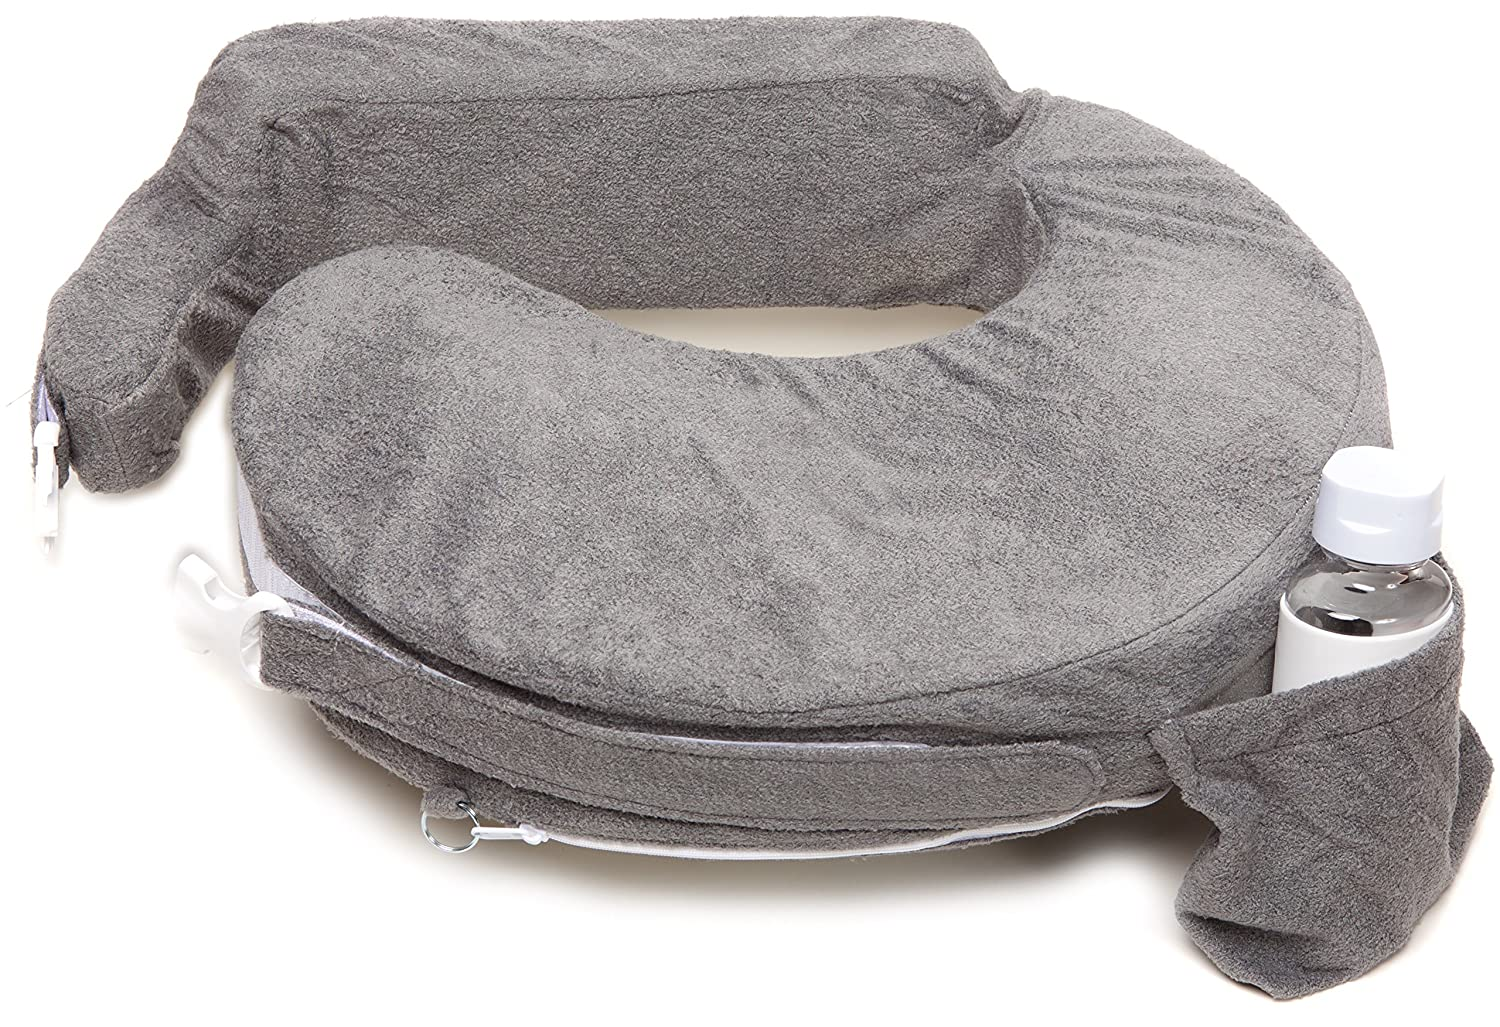 91hBW4rzQuL. SL1500 The Best Nursing Pillows for Mothers in 2021 [Review]